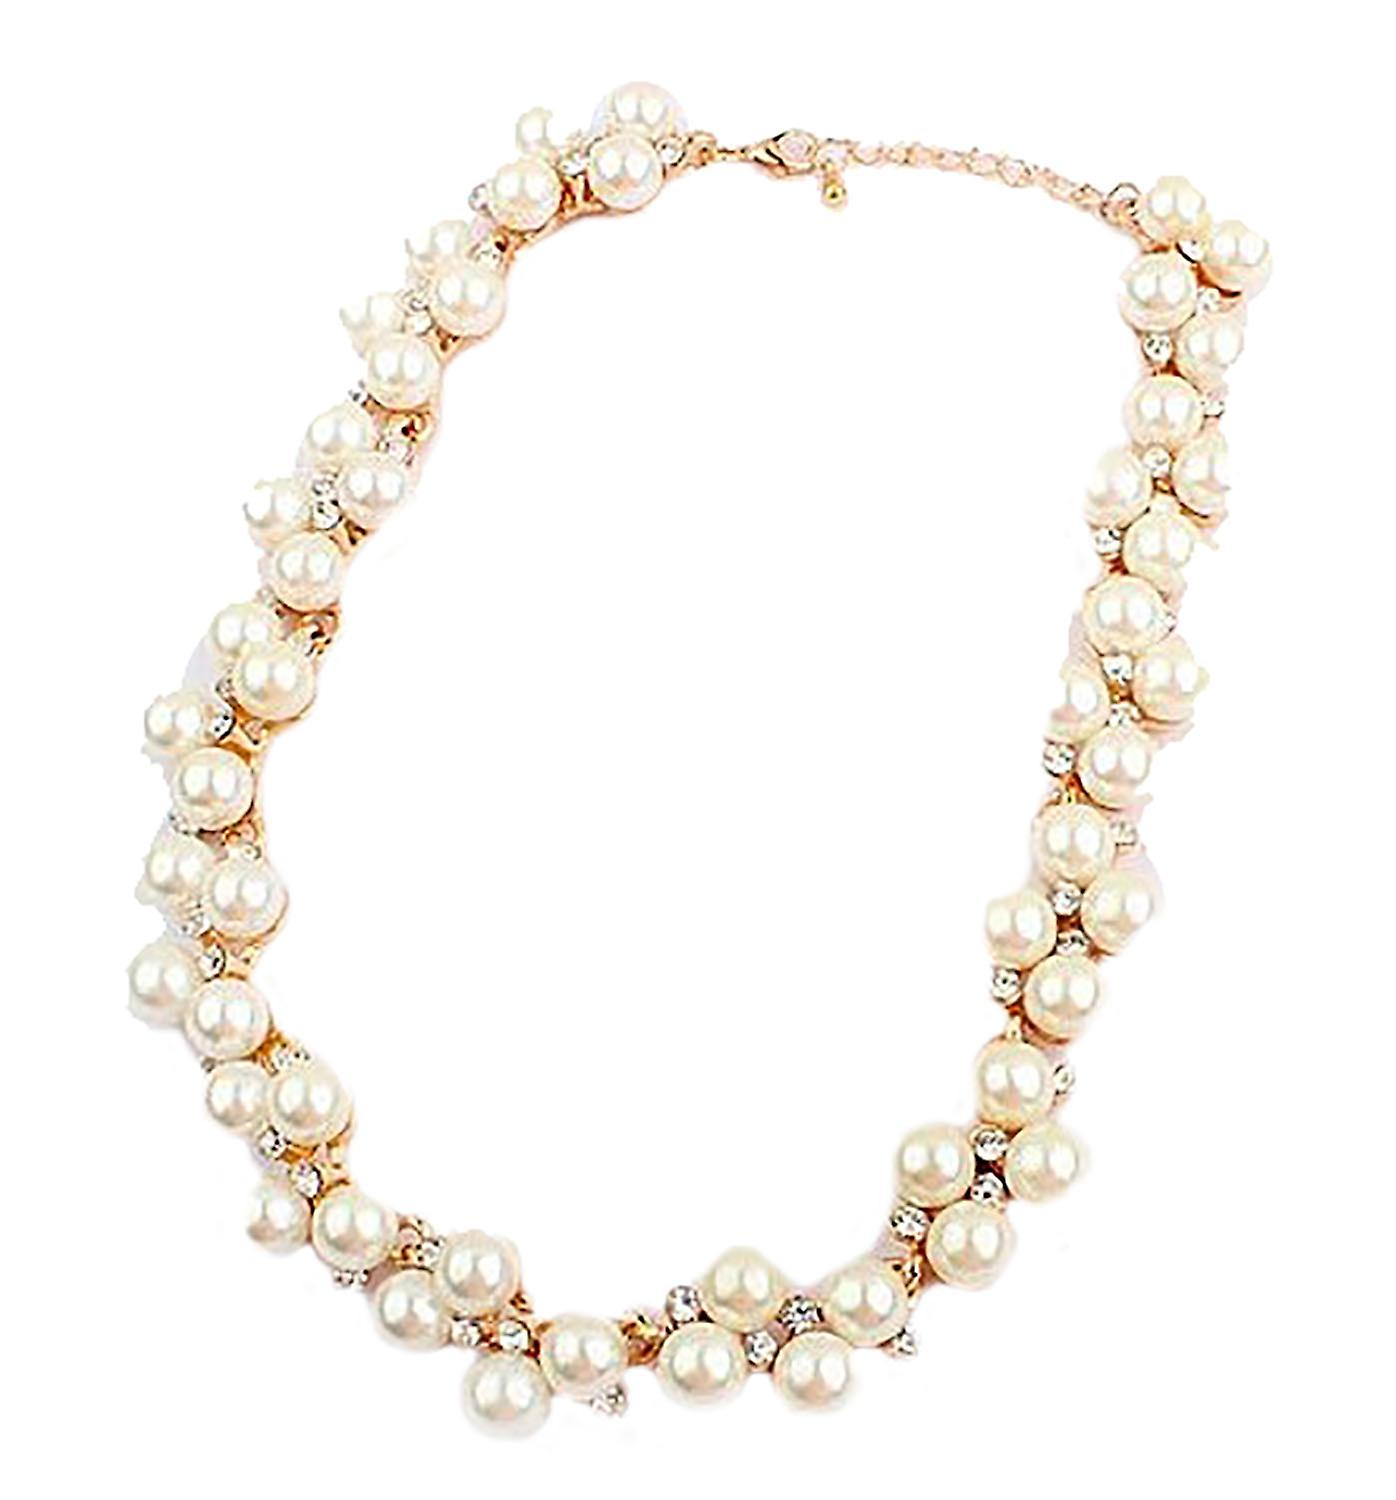 Waooh - elegant necklace with pearls and rhinestones